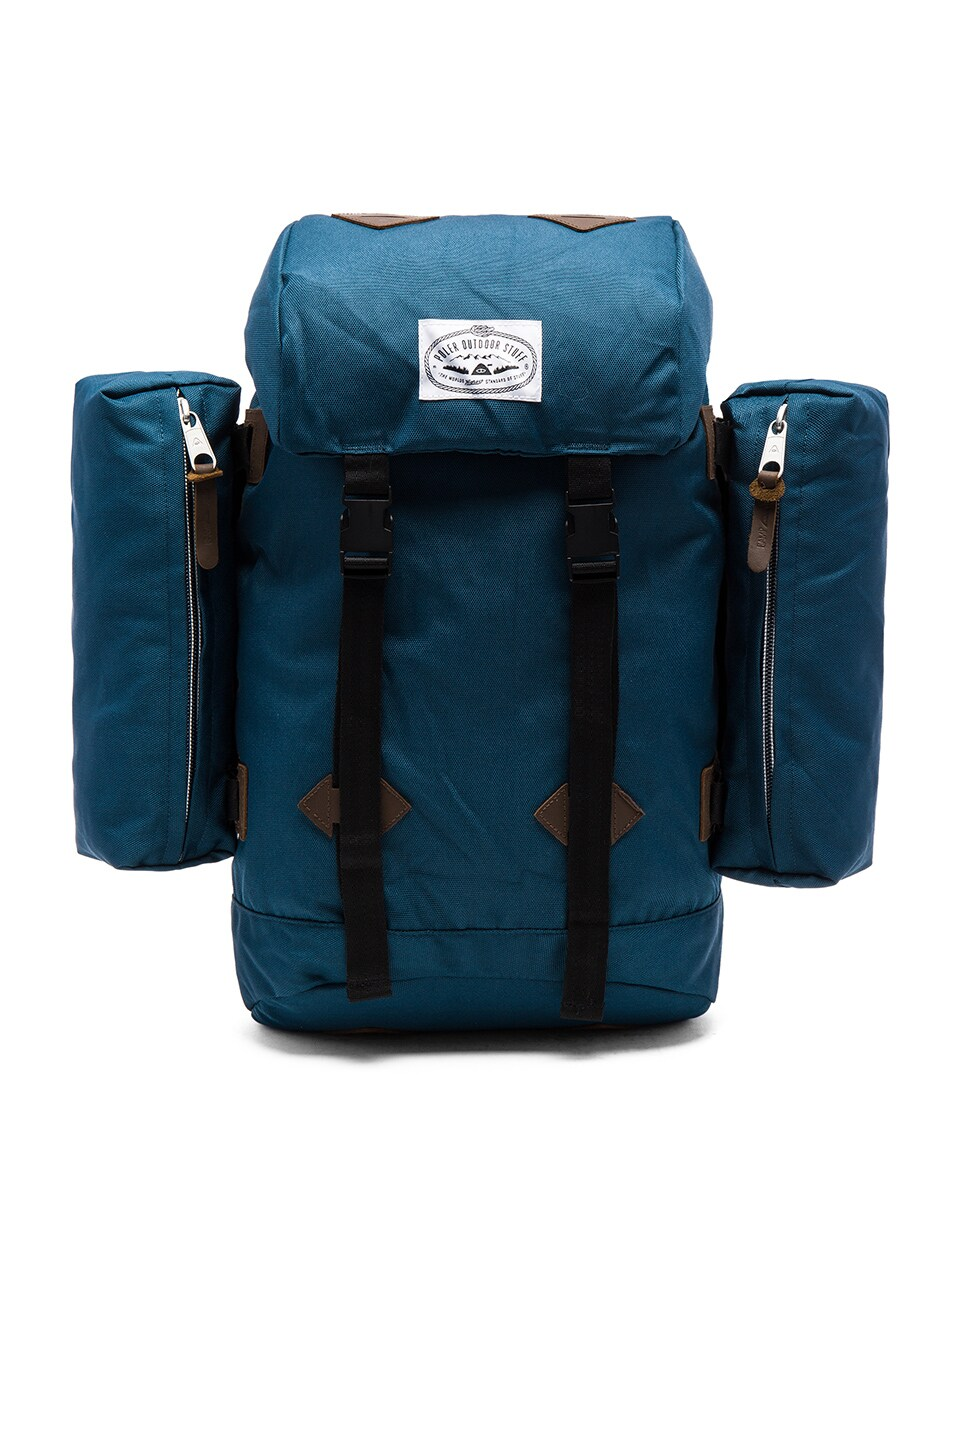 Poler Retro Rucksack in Blue Steel